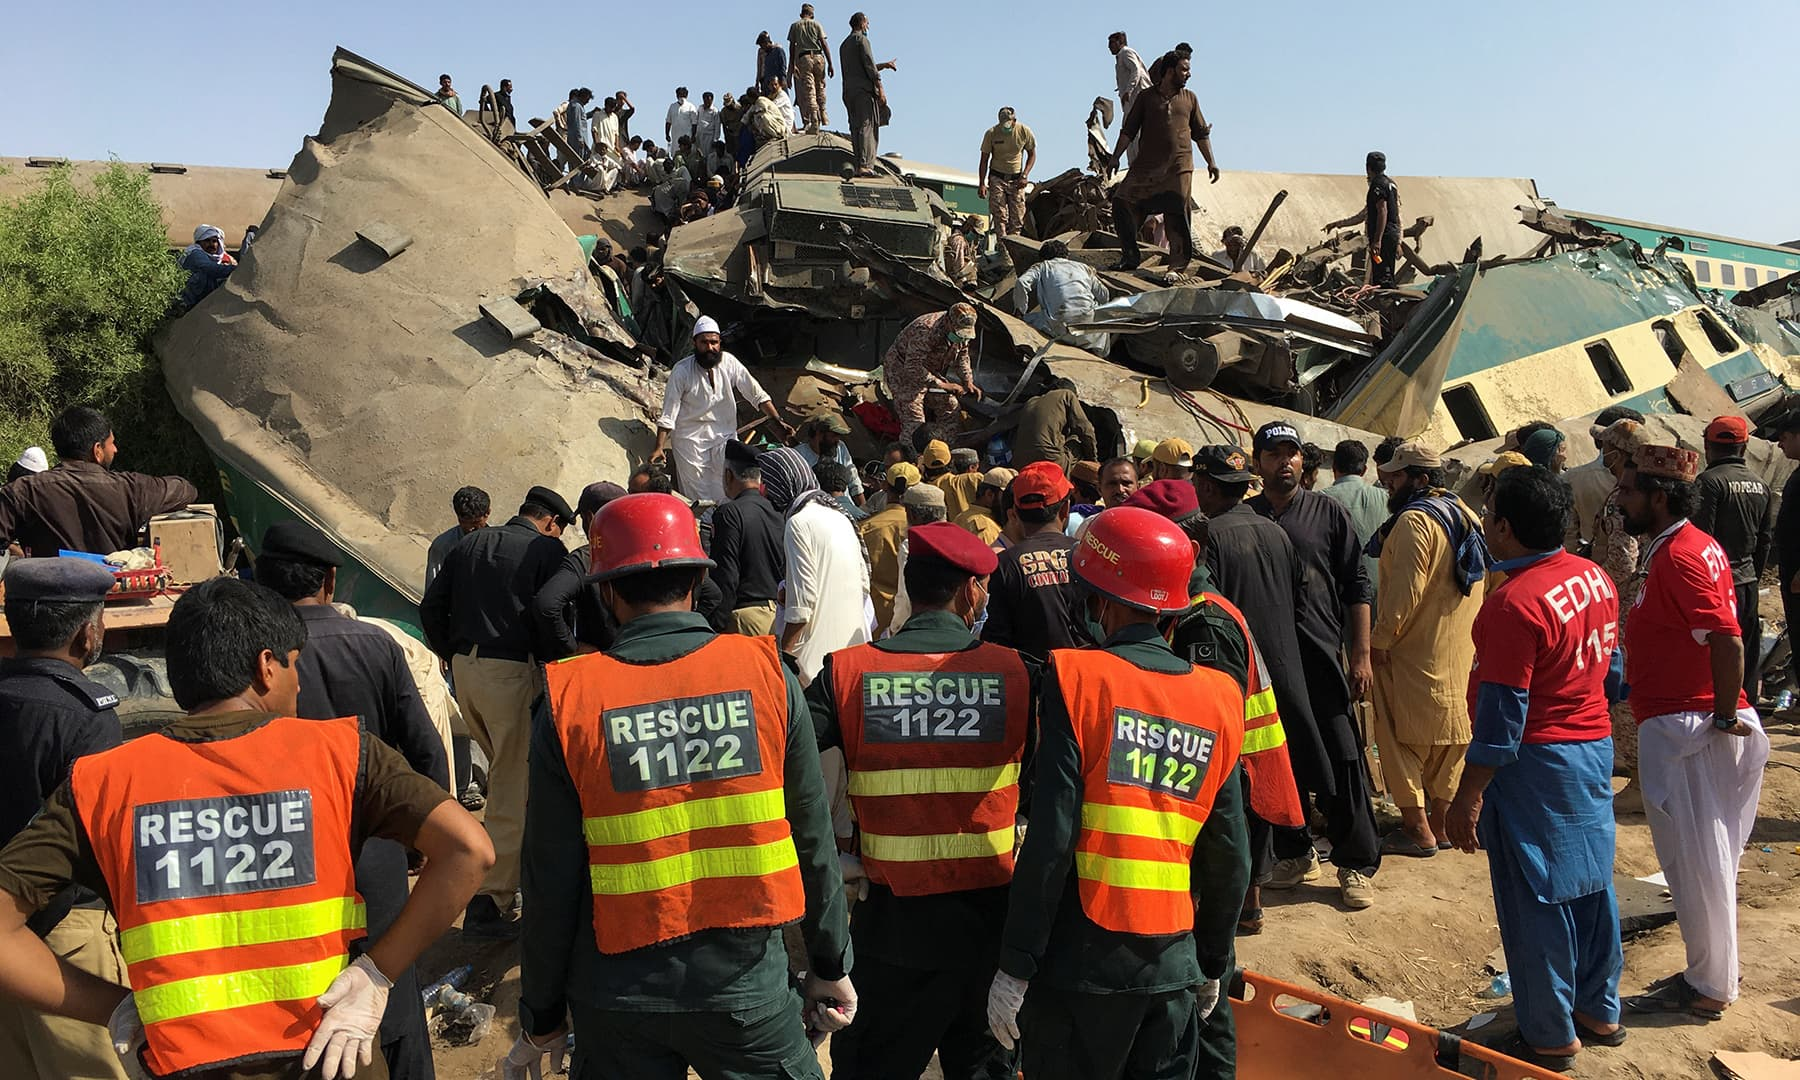 Rescue workers stand as people gather at the site of a collision between two trains in Ghotki, June 7. — Reuters